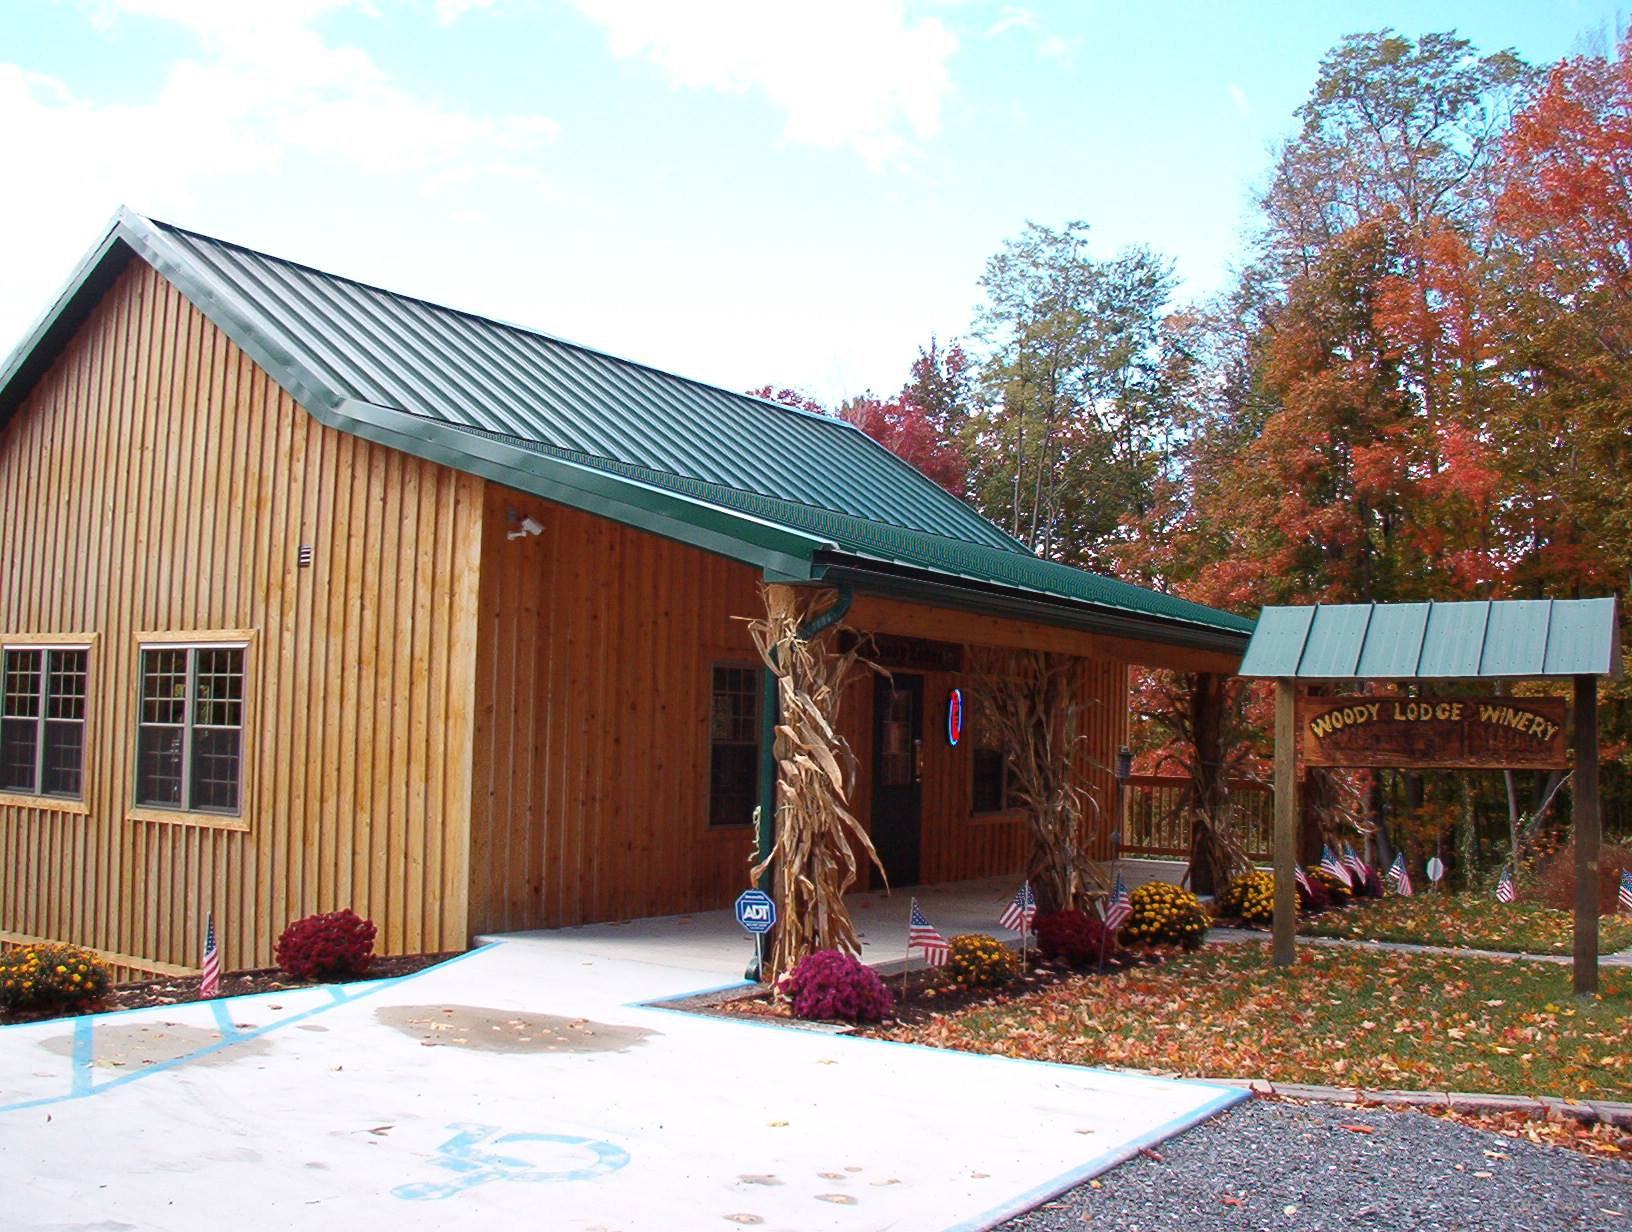 woody-lodge-winery-picture.jpg